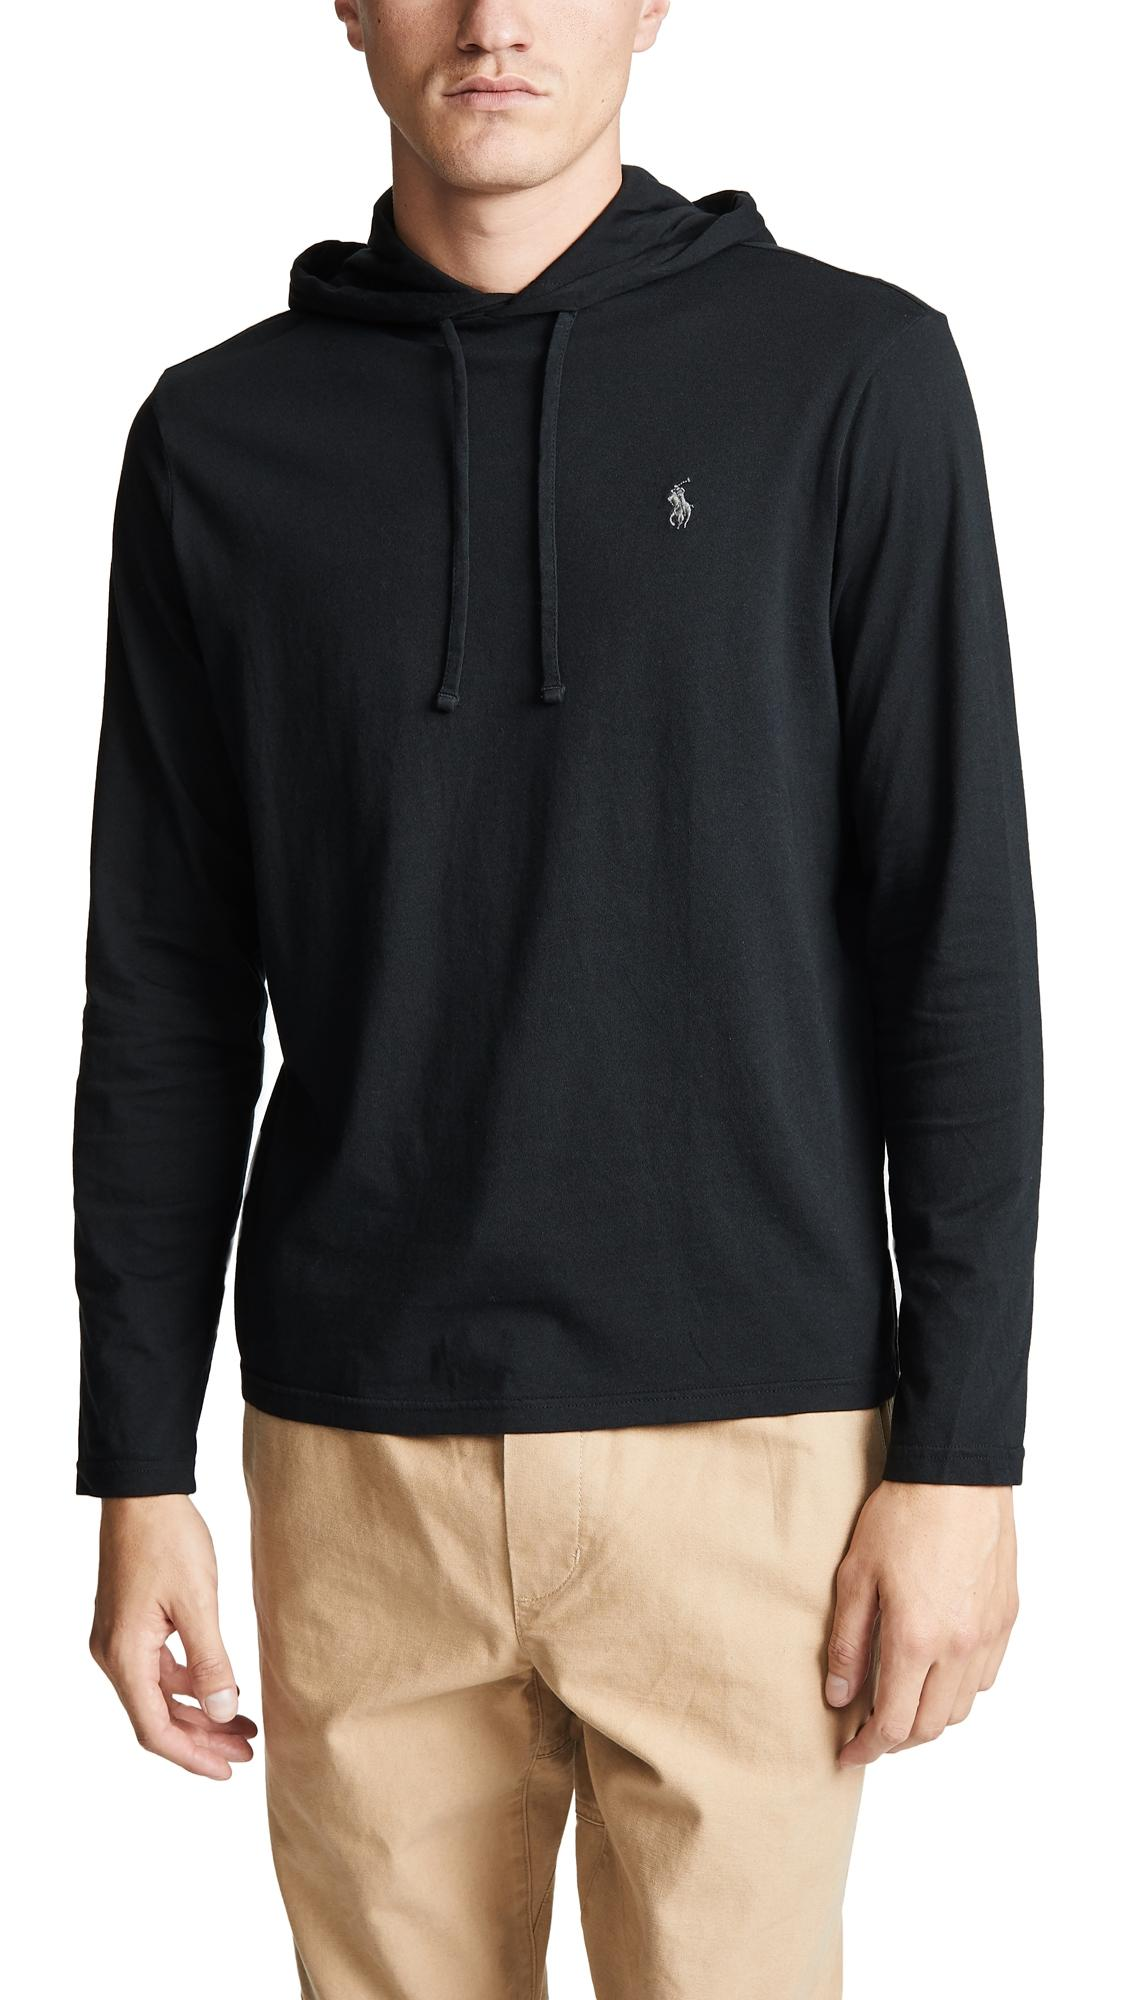 0403cfc29 Polo Ralph Lauren Long Sleeve Hooded Tee Shirt In Black | ModeSens